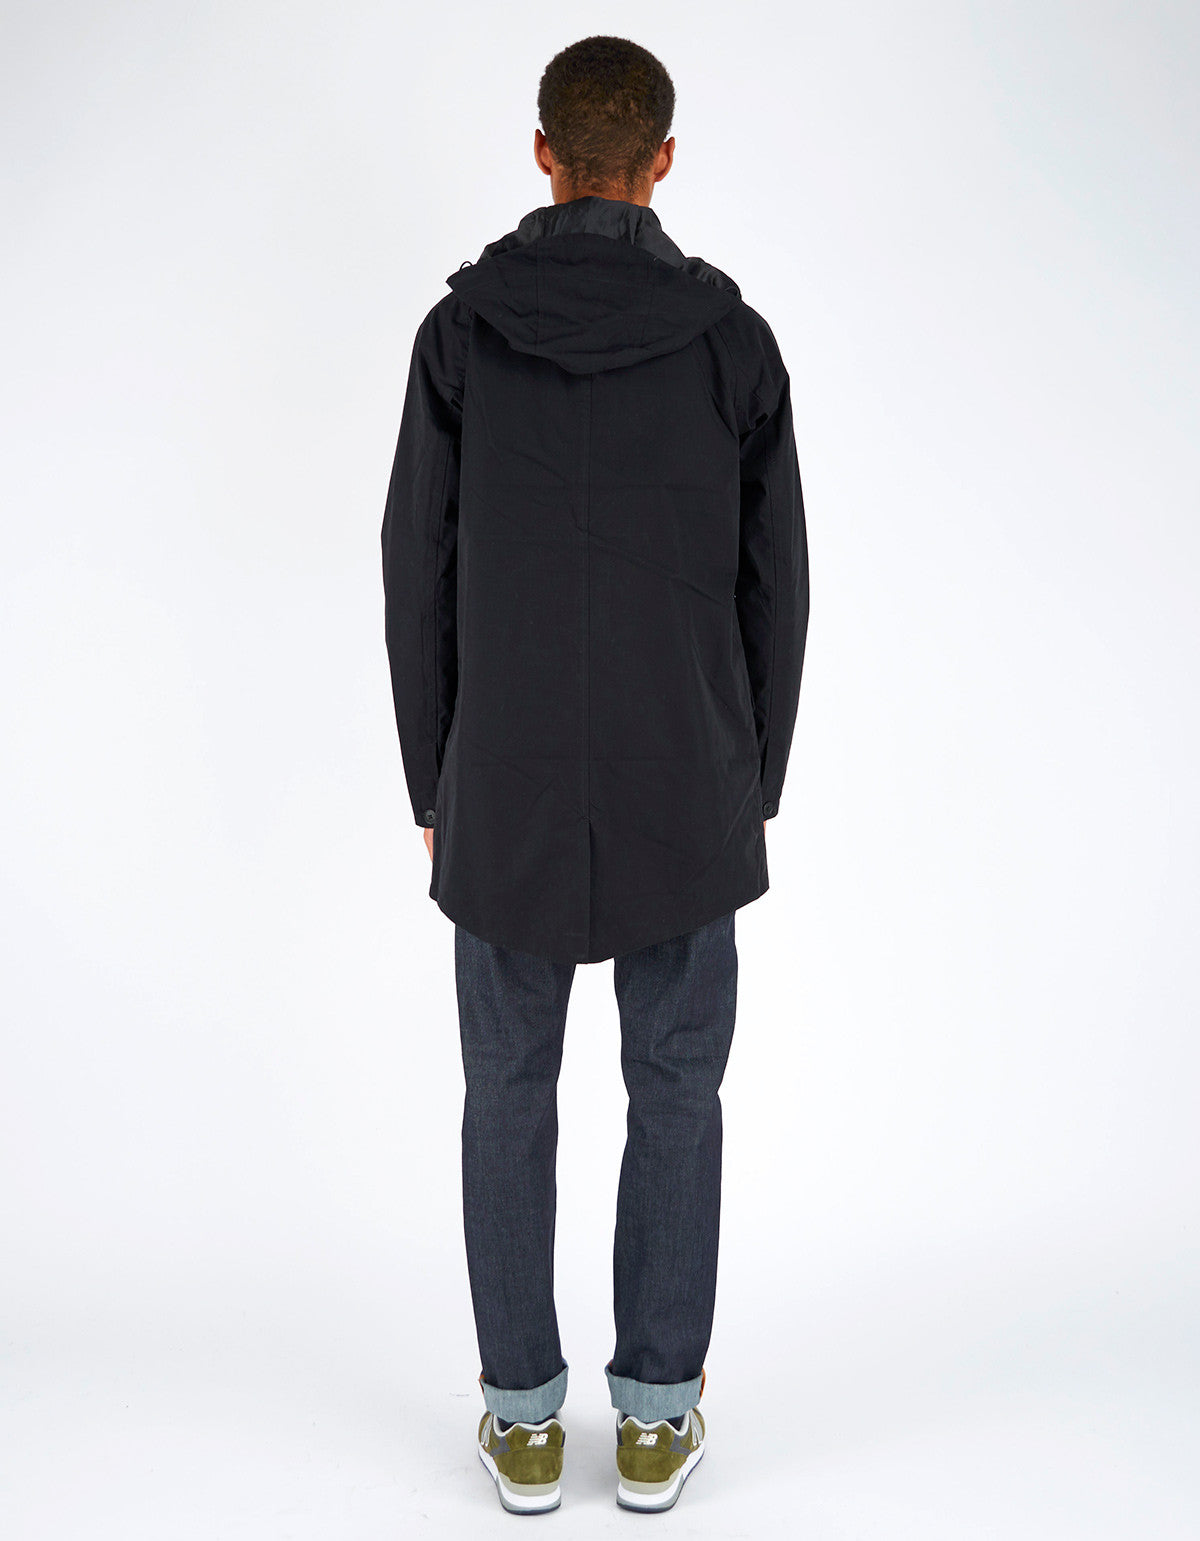 Baro Brockton Jacket Black - Still Life - 3